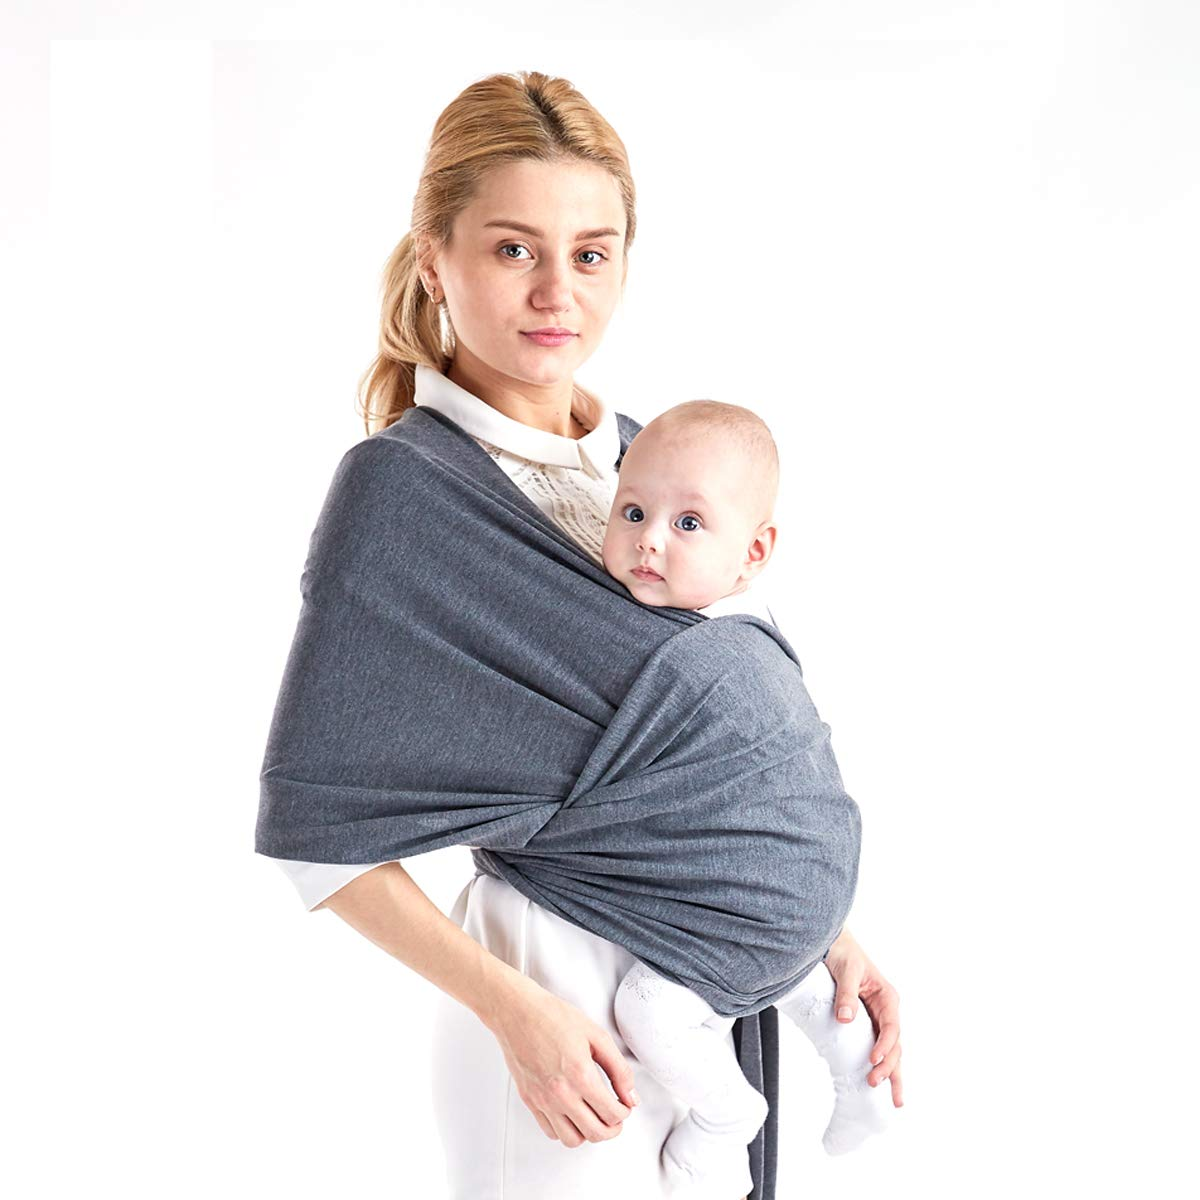 Baby Wrap Carrier Adjustable Breastfeeding Cover Cotton Sling Baby Carrier for Infants up to 35 lbs/15kg, Soft and Comfortable Standard Baby Wrap: Light, Lush and Breathable Baby Slings (Black) Three co